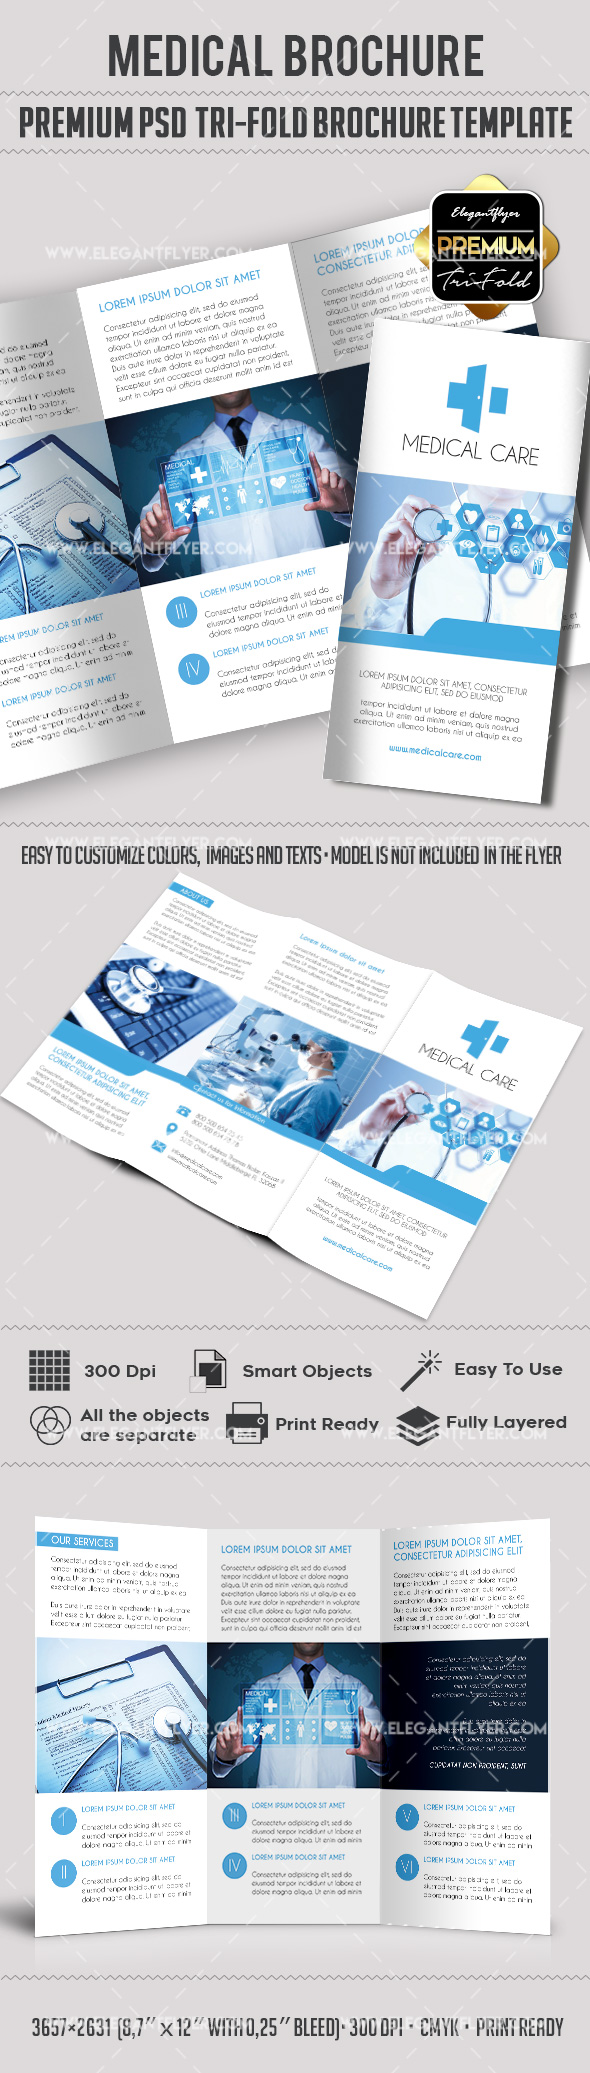 Brochure for Immediate Medical Care